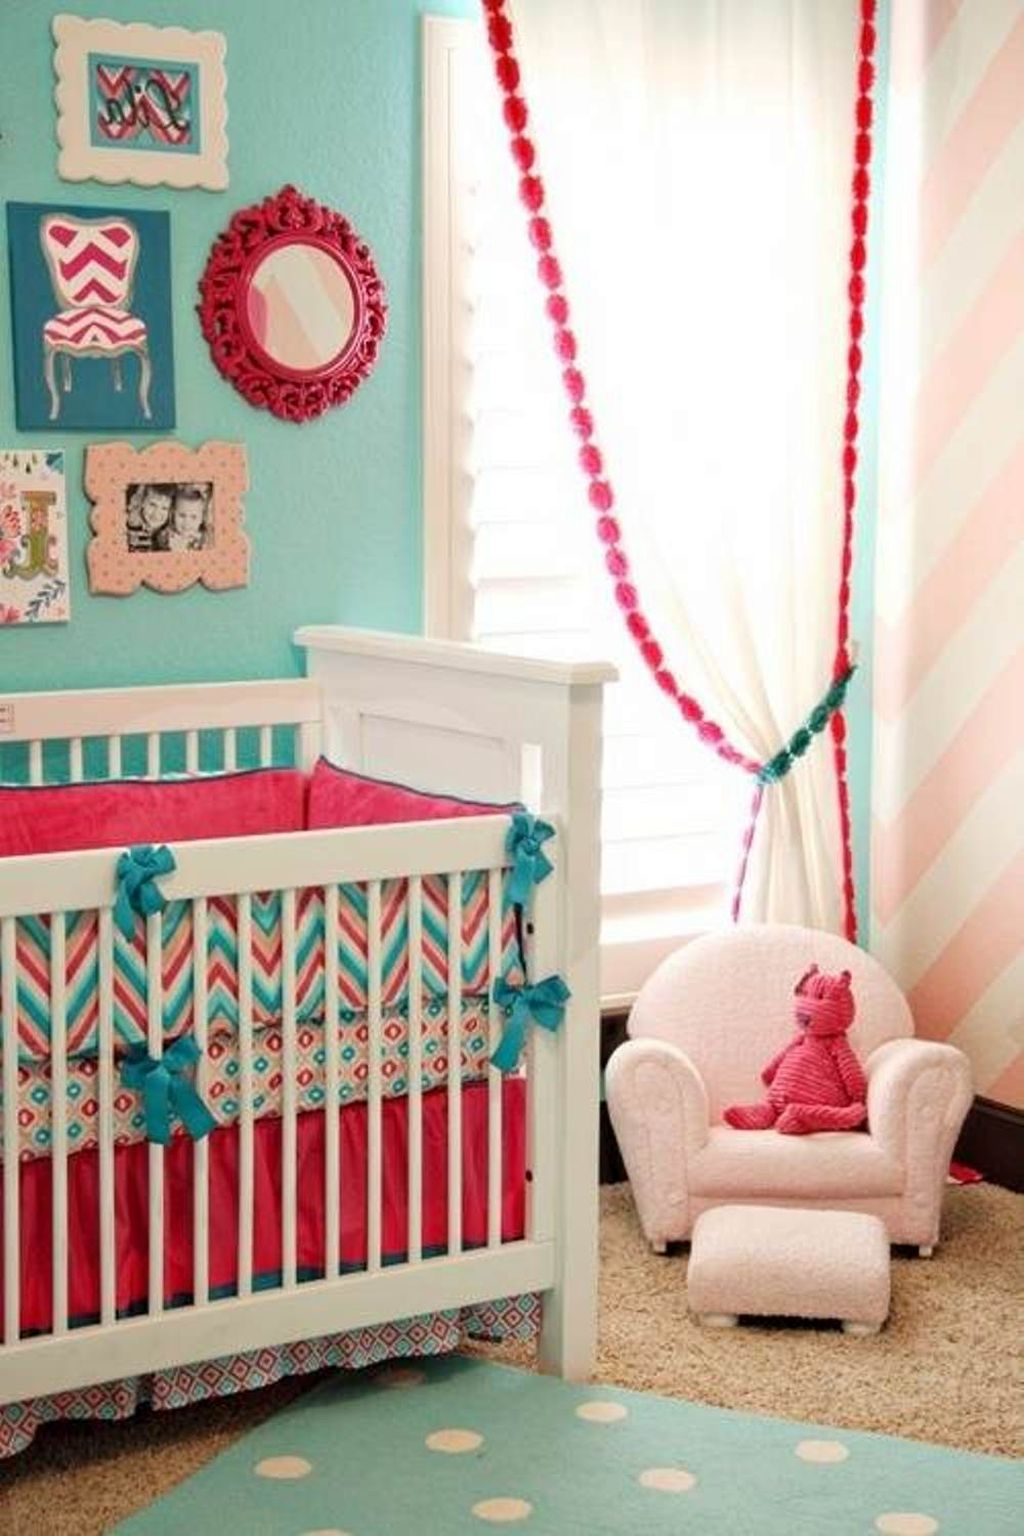 20 cute baby girl bedding ideas for your little angel Infant girl room ideas